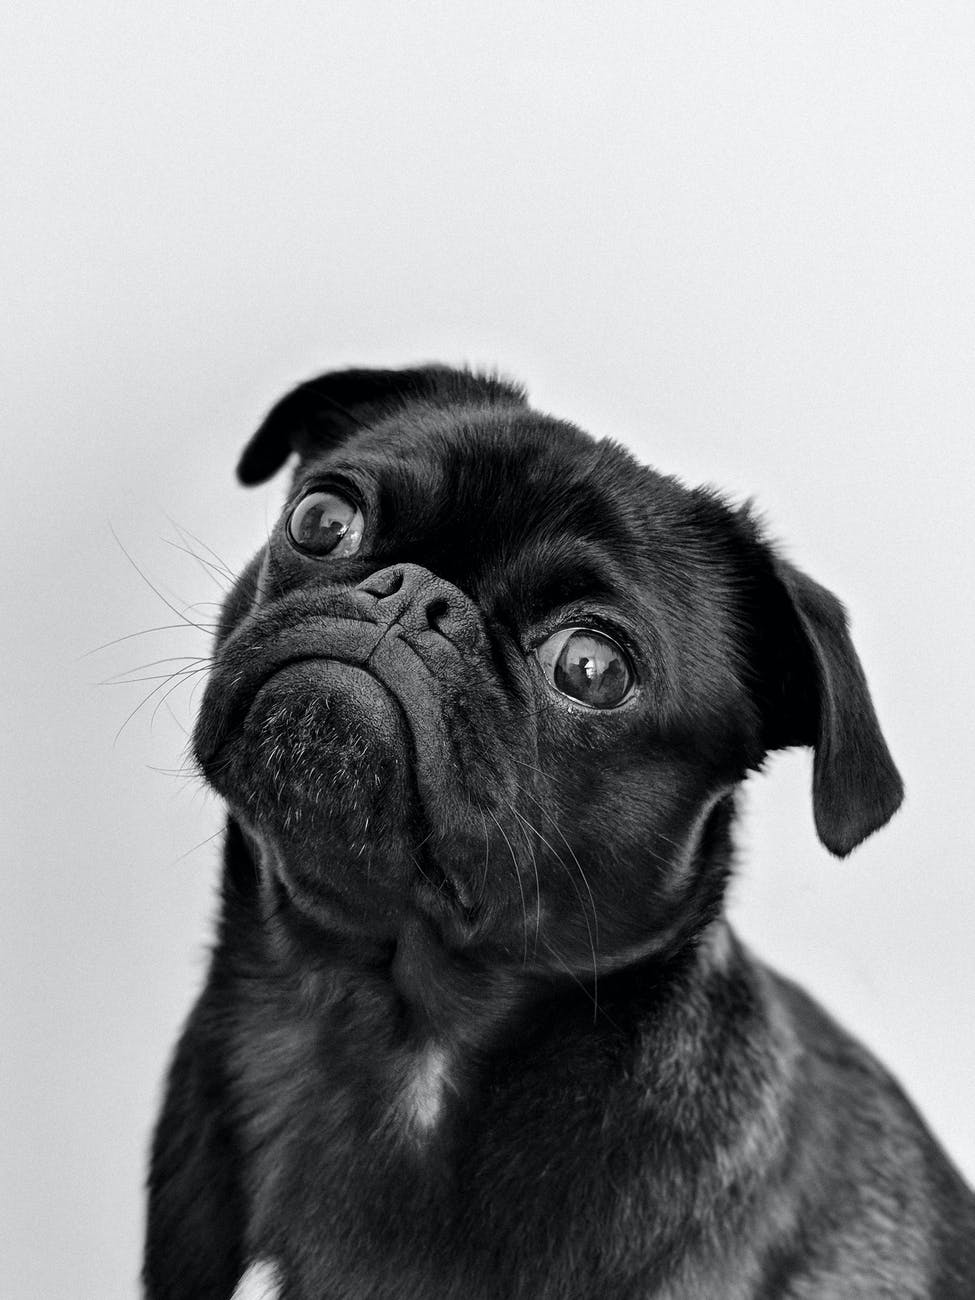 Tips for puppy training